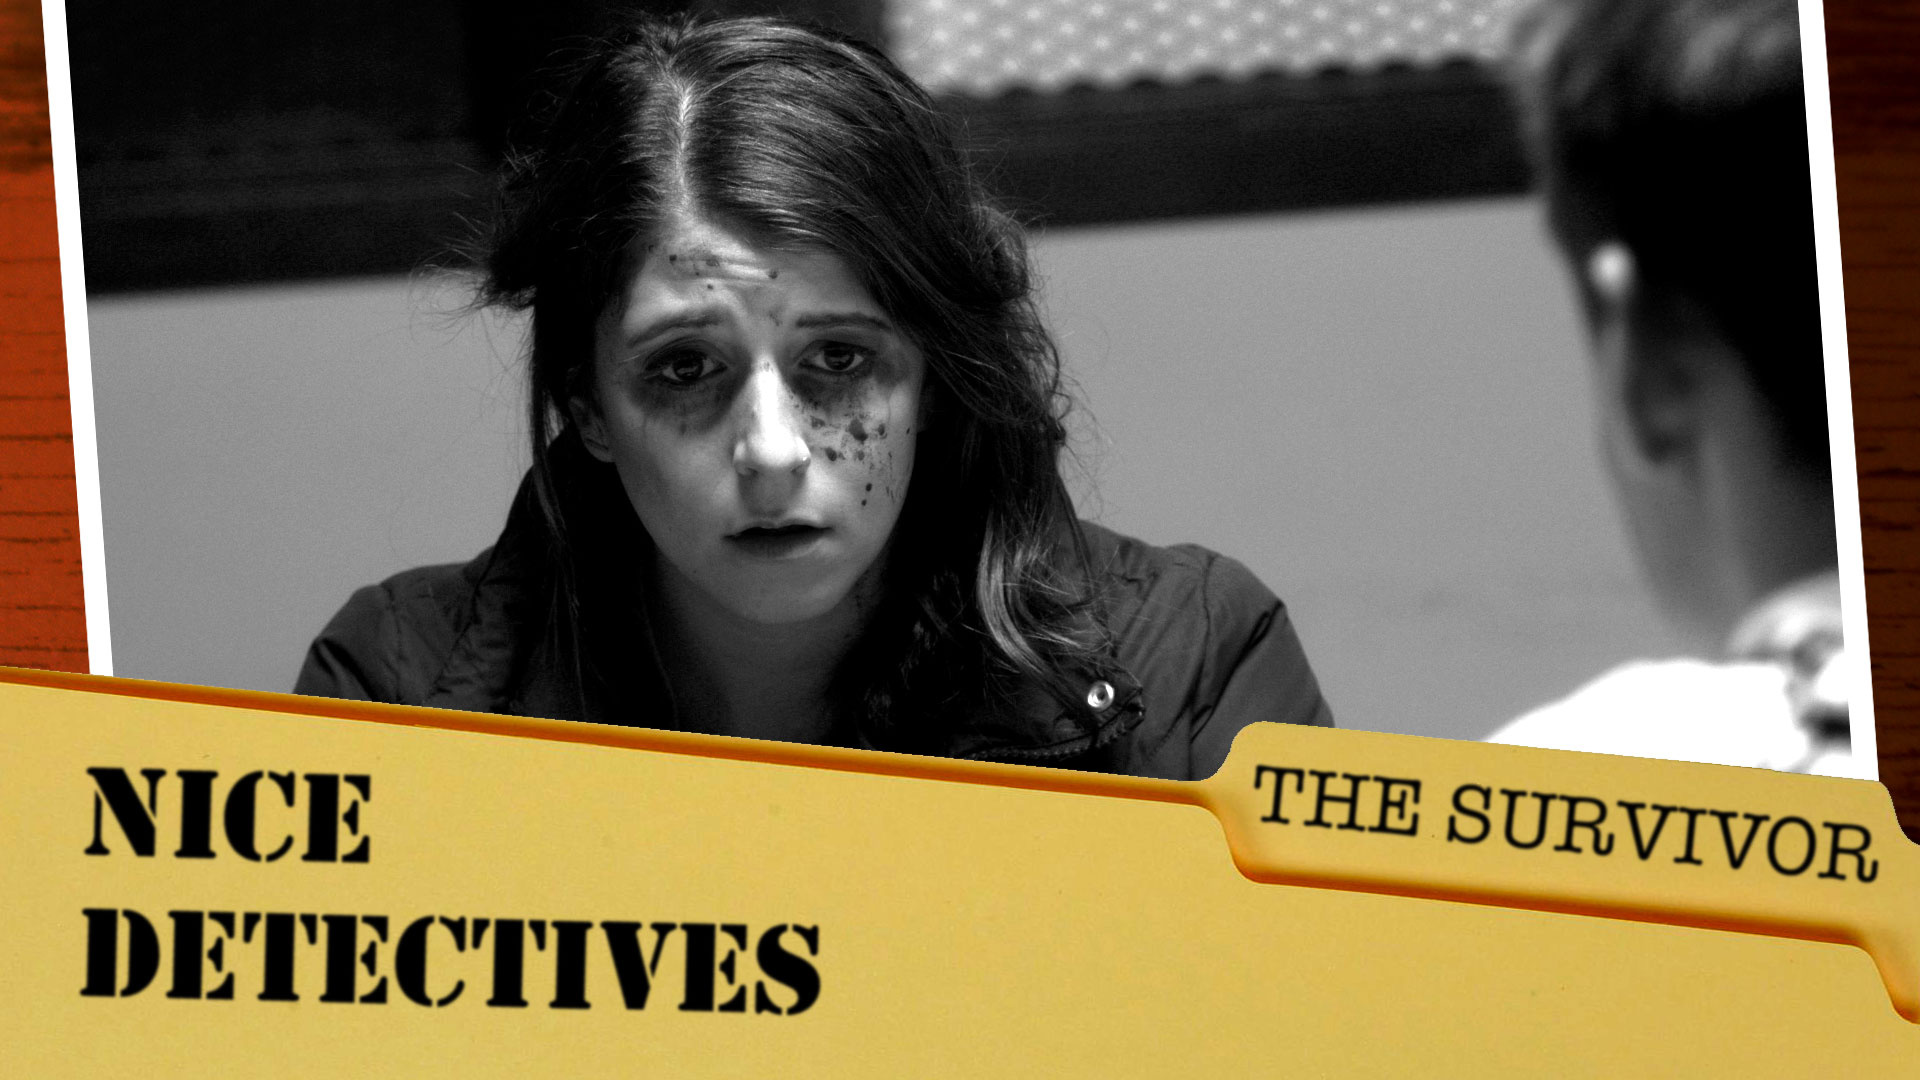 The Survivor – Nice Detectives